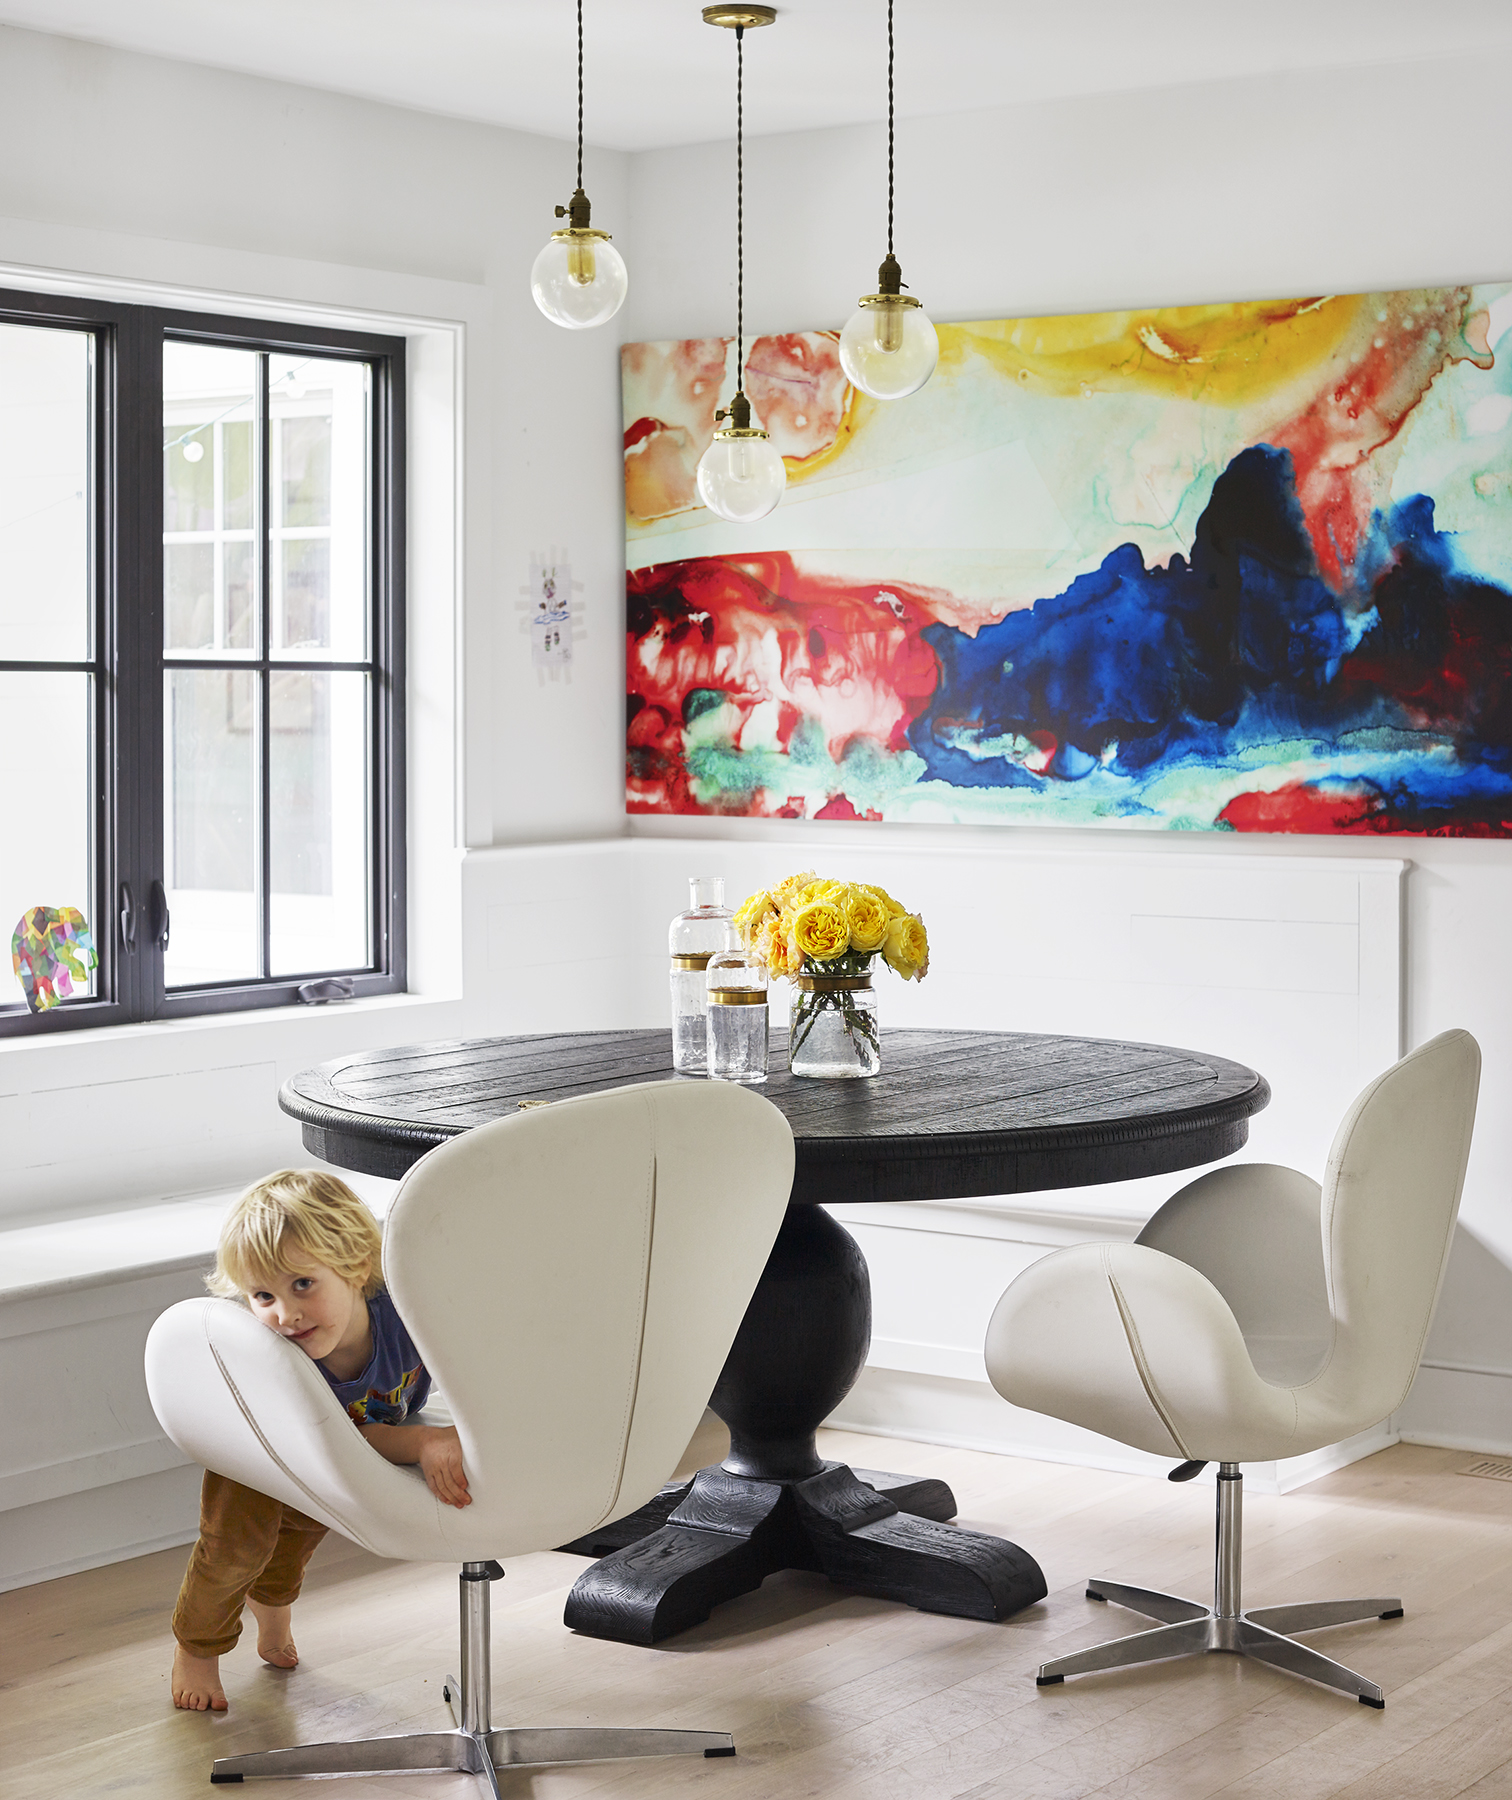 White dining room with bold colorful painting